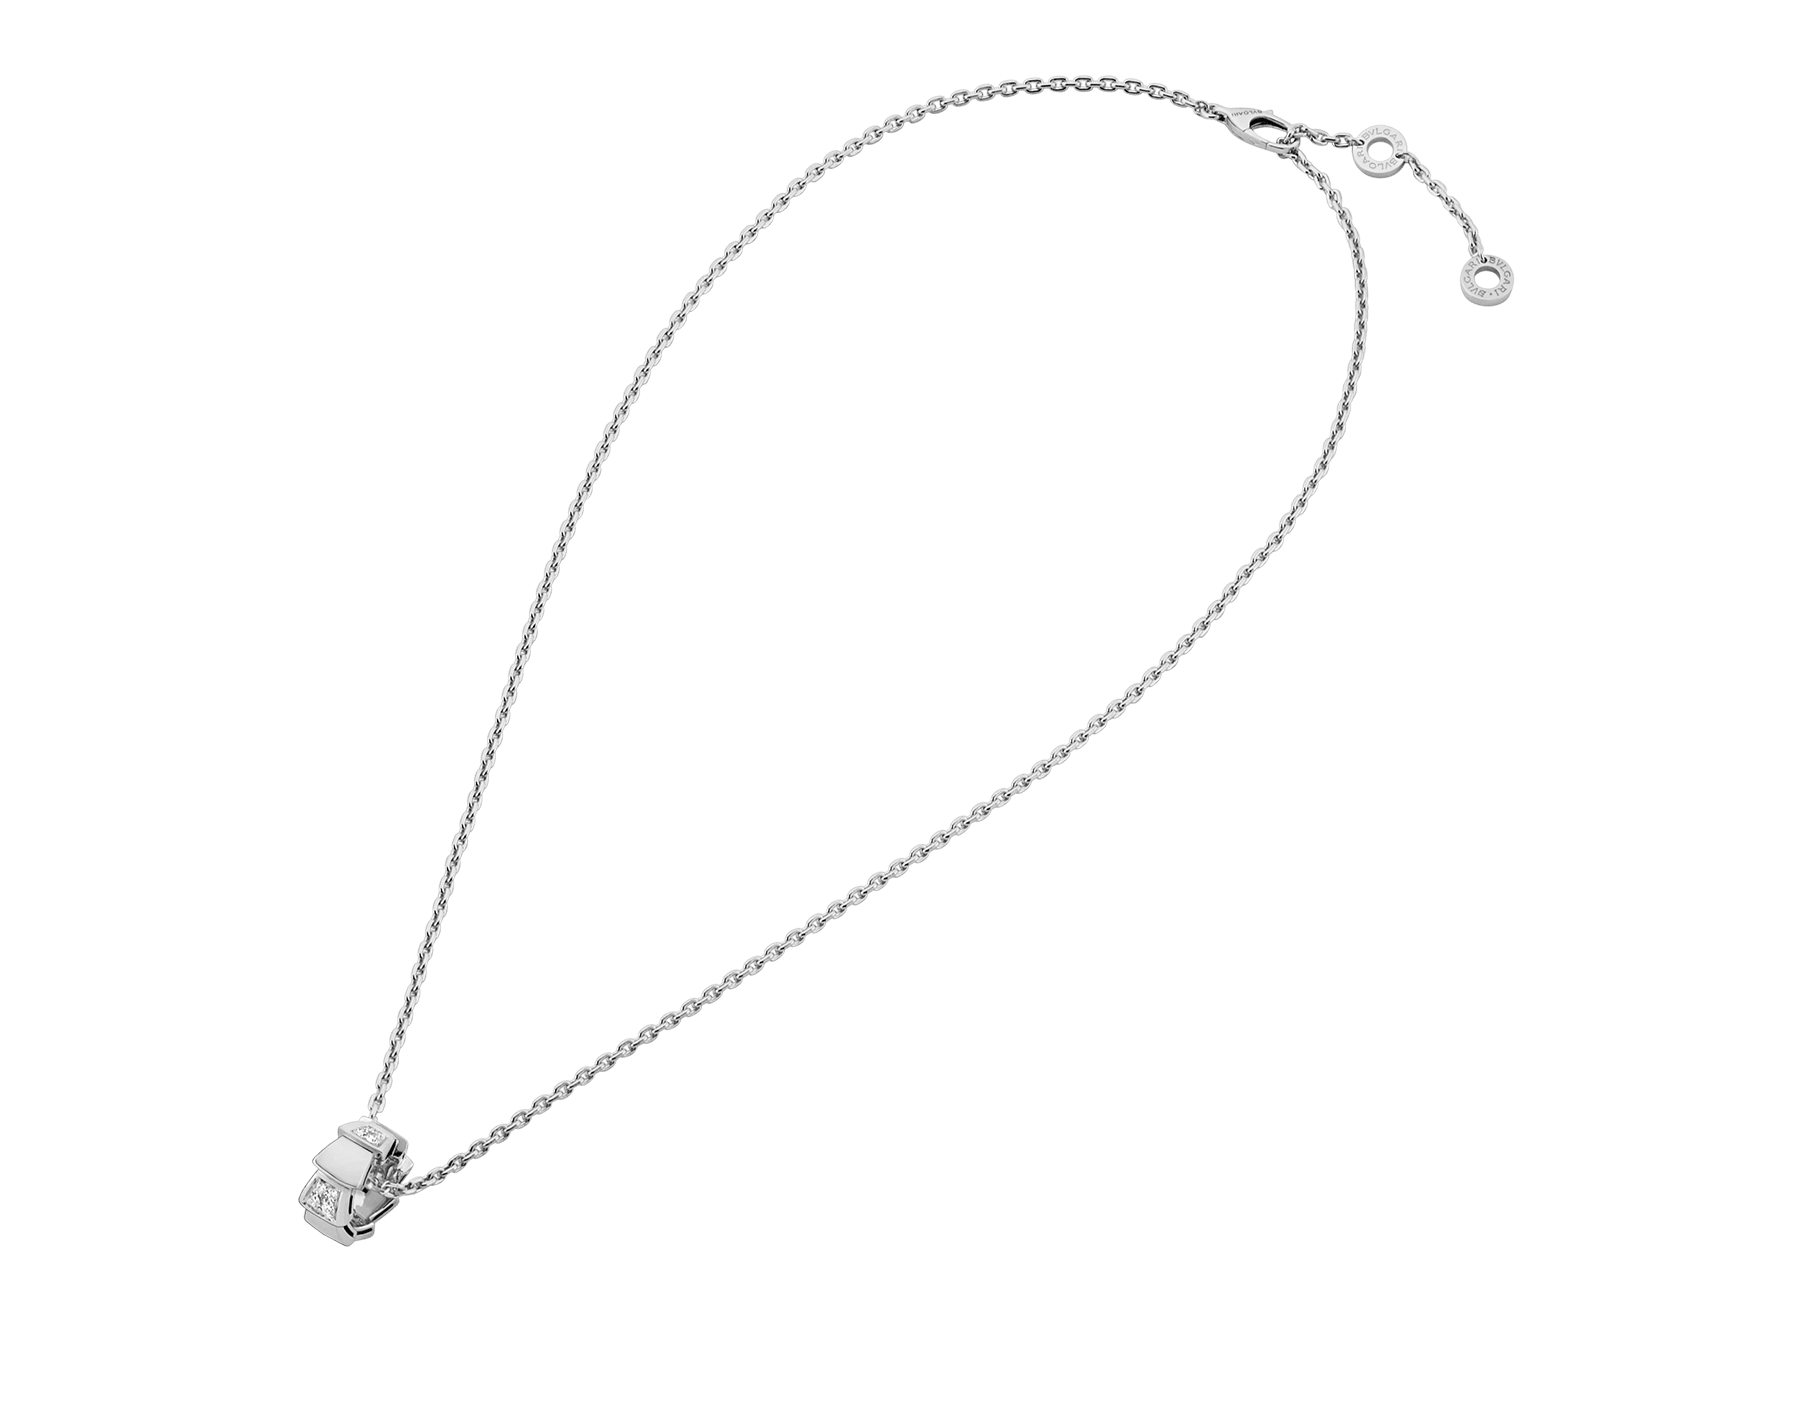 Serpenti Viper necklace with 18 kt white gold chain and 18 kt white gold pendant set with demi pavé diamonds.(0.21 ct) 355255 image 2